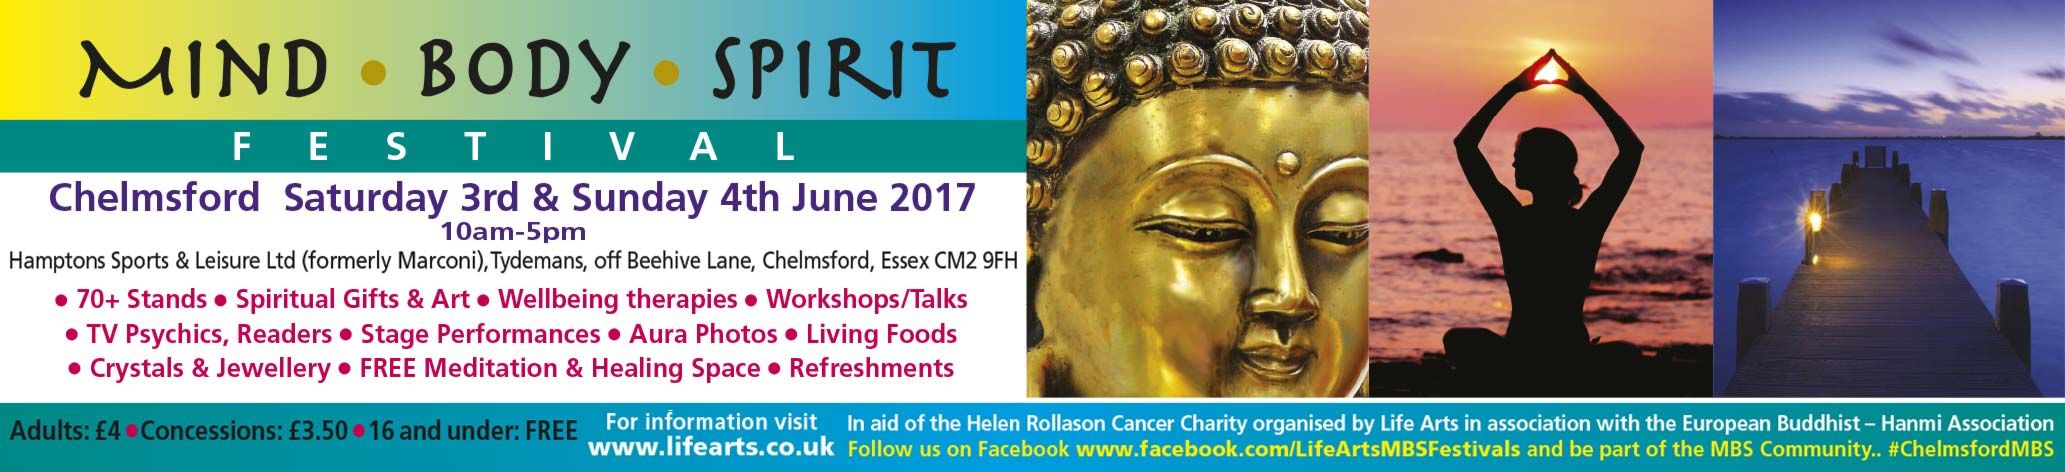 Mind l Body l Spirit FESTIVAL – Chelmsford Saturday 3rd & Sunday 4th June 2017 10am-5pm Hamptons Sports & Leisure Ltd (formerly Marconi), Tydemans, off Beehive Lane, Chelmsford, Essex CM2 9FH l 70+ Stands l Spiritual Gifts & Art l Wellbeing therapies l Workshops/Talks l TV Psychics, Readers l Stage Performances l Aura Photos l Living Foods l Crystals & Jewellery l FREE Meditation & Healing Space l Refreshments Adults: £4 l Concessions: £3.50 l 16 and under: FREE		In aid of the Helen Rollason Cancer Charity organised by Life Arts in association with the European Buddhist – Hanmi Association  For information visit: www.lifearts.co.uk  Follow us on Facebook www.facebook.com/LifeArtsMBSFestivals and be part of the MBS Community.. #ChelmsfordMBS